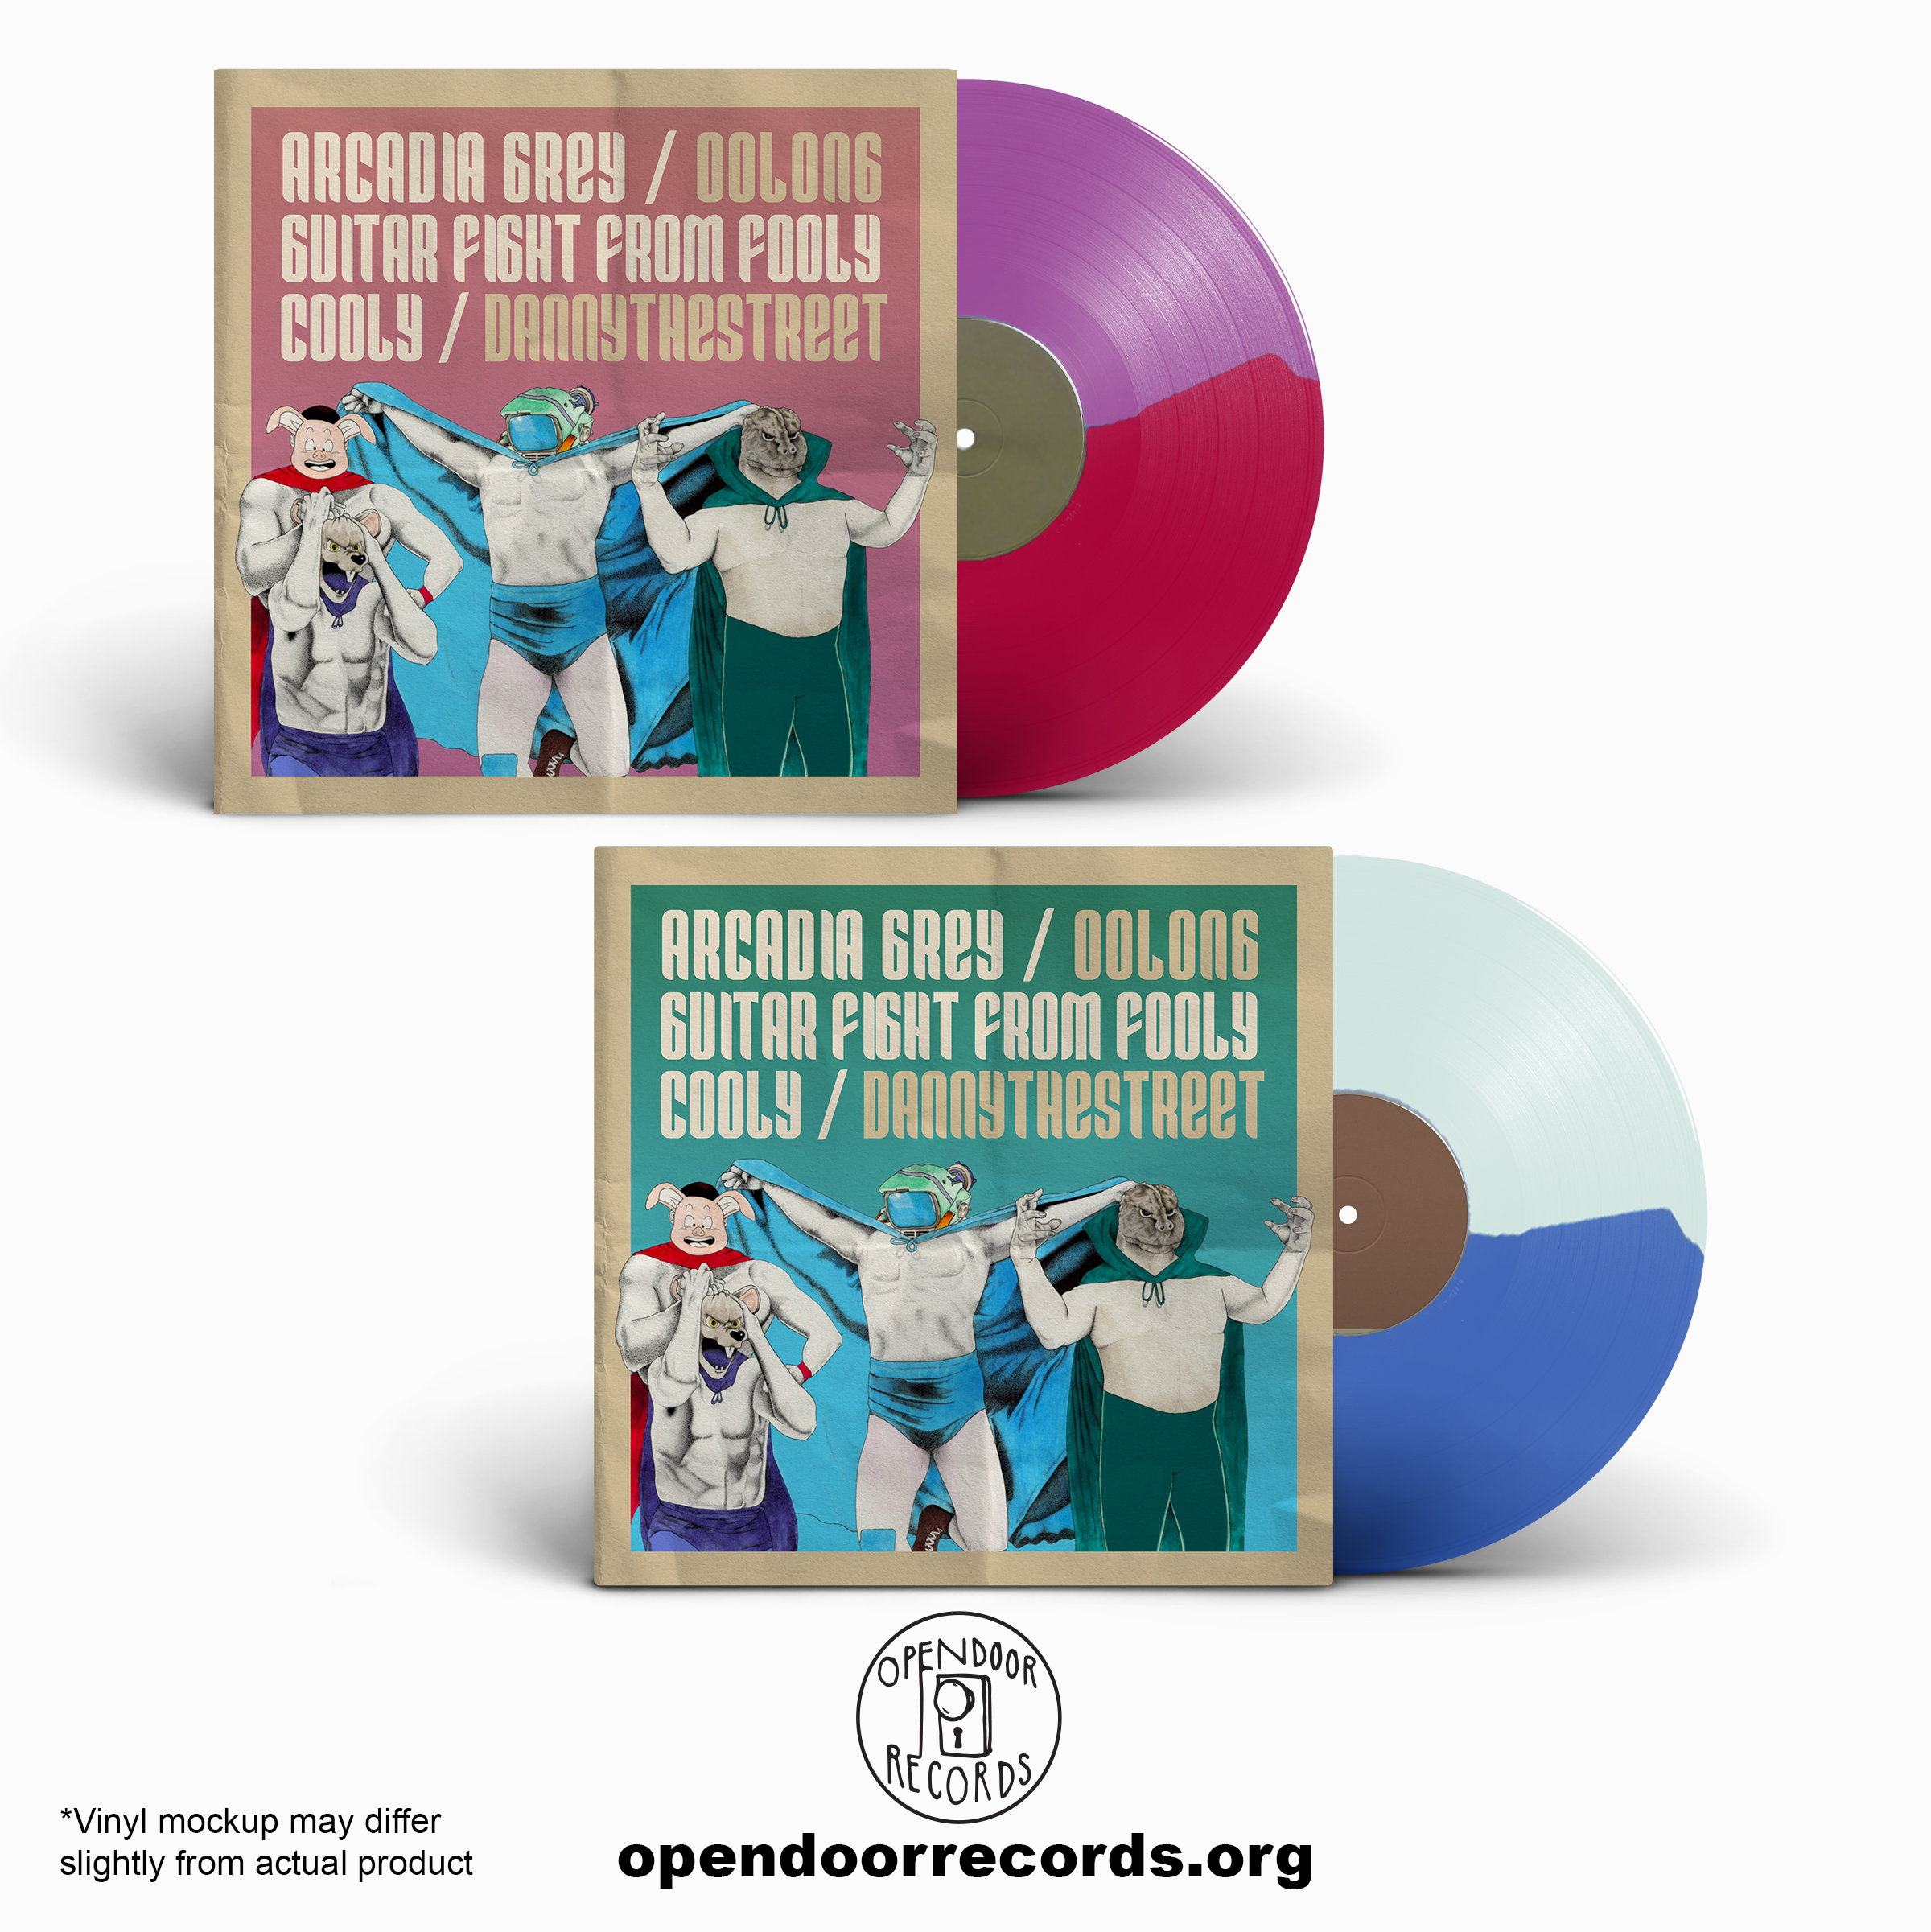 Arcadia Grey, Oolong, Guitar Fight From Fooly Cooly, dannythestreet - Fatal 4 Way (Split)  LP